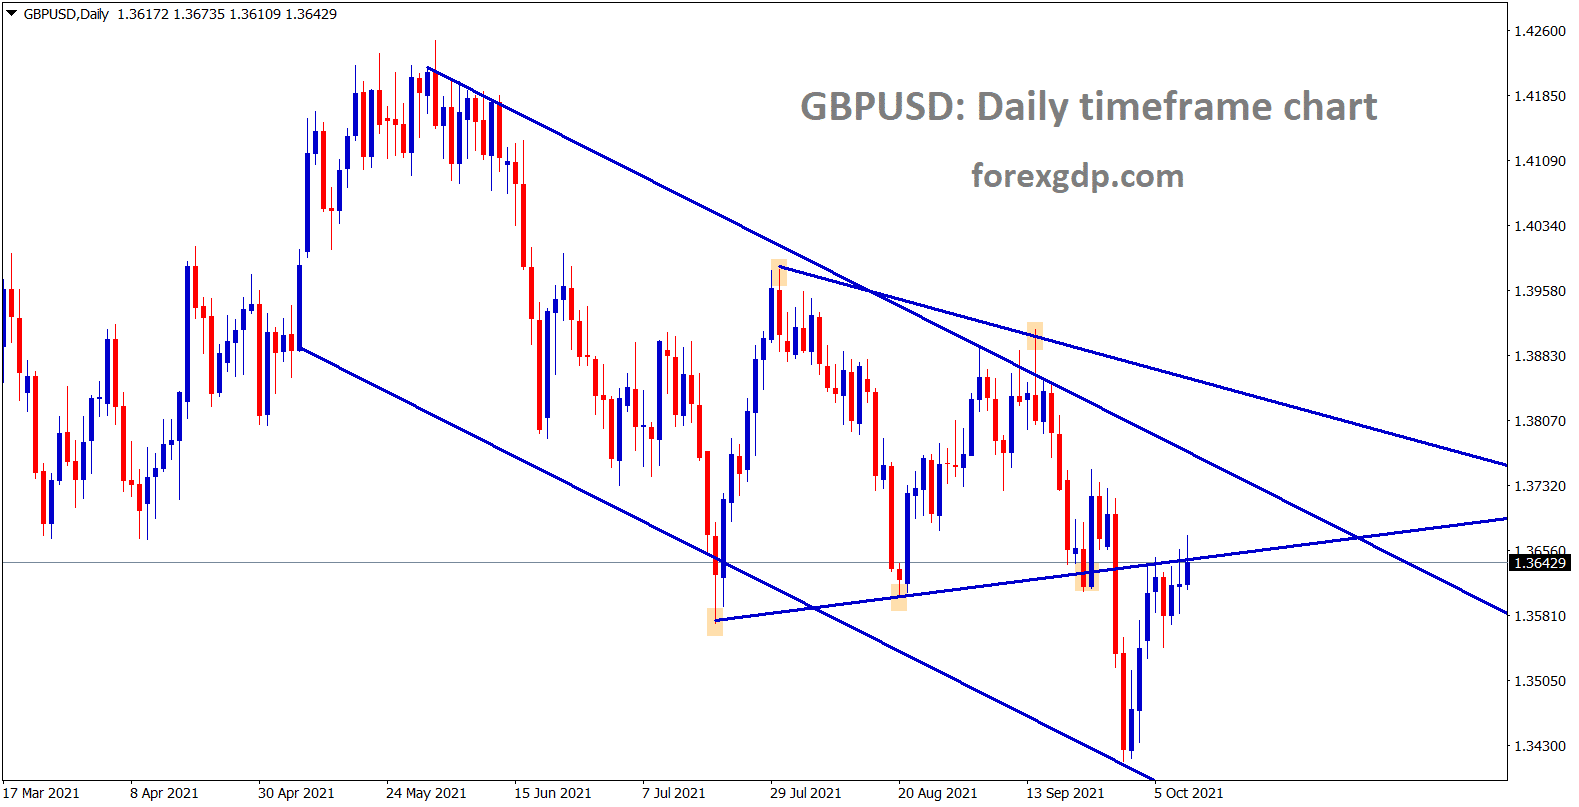 GBPUSD is consolidating at the retest area of the symmetrical triangle and its trying to move higher to the lower low of the descending channel line